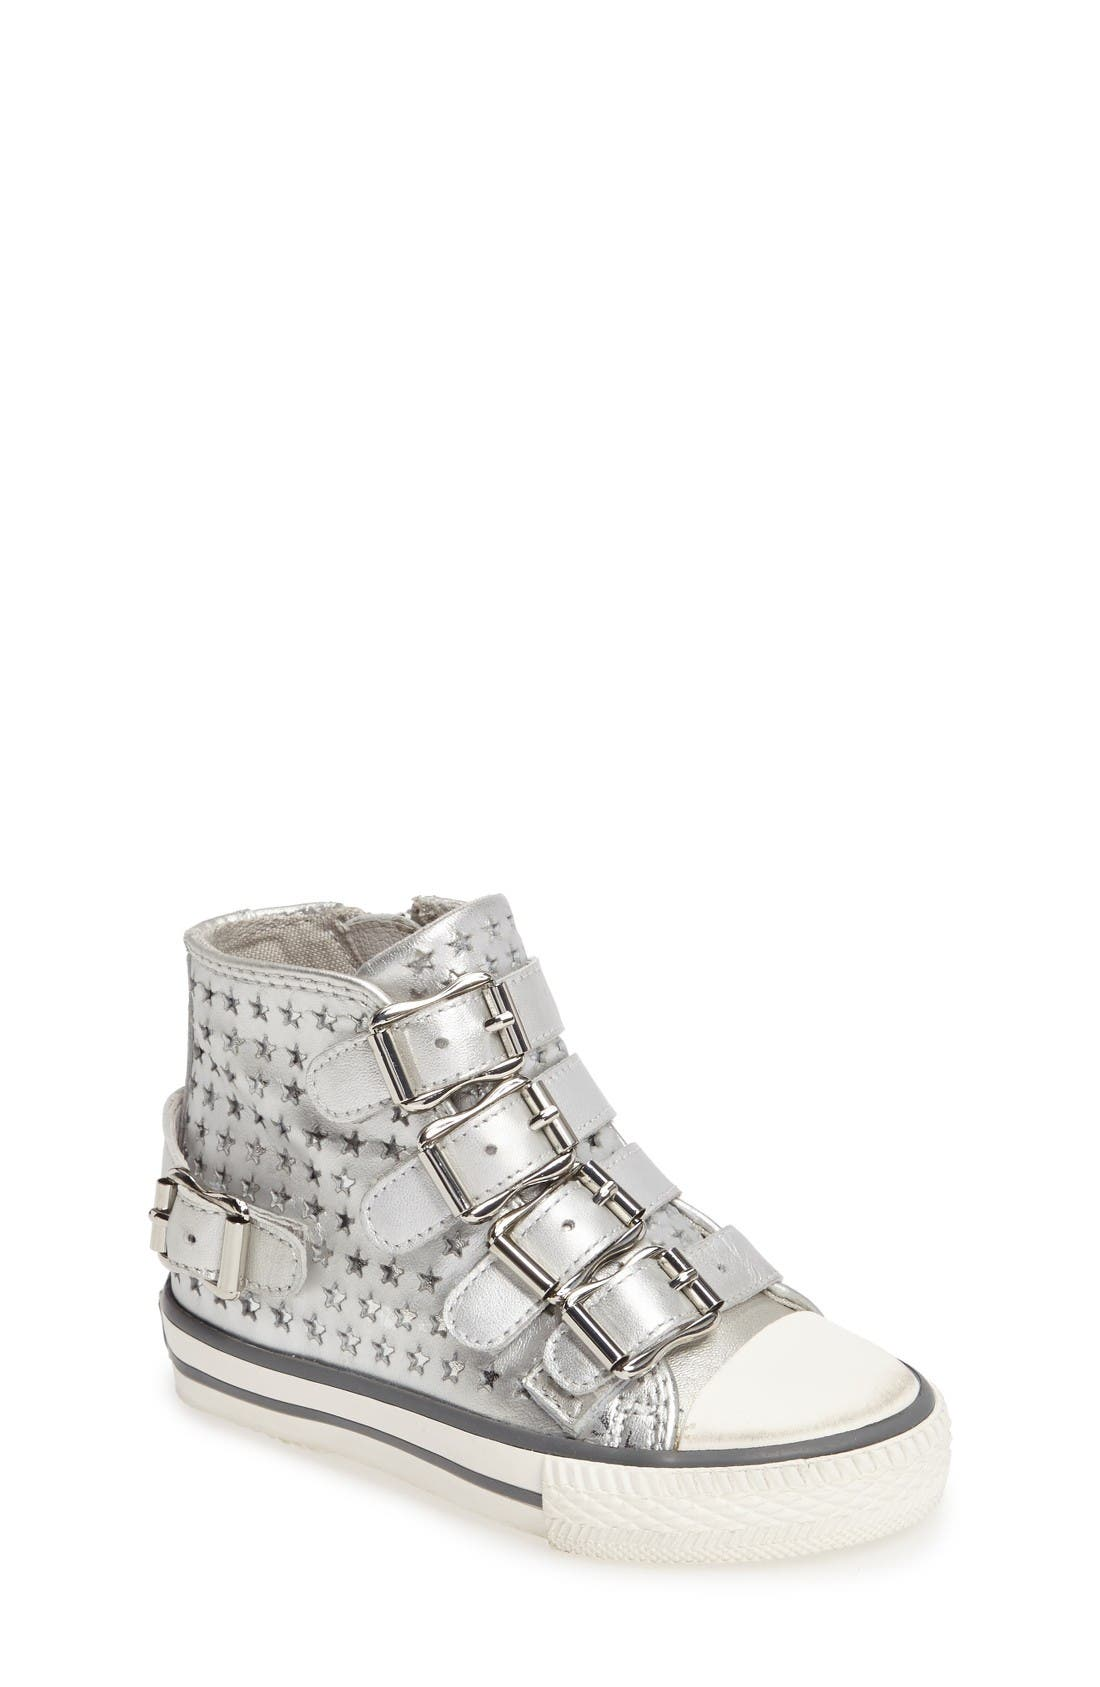 Ash Vava Starboss Buckle Strap High Top Sneaker (Walker, Toddler, Little Kid & Big Kid)